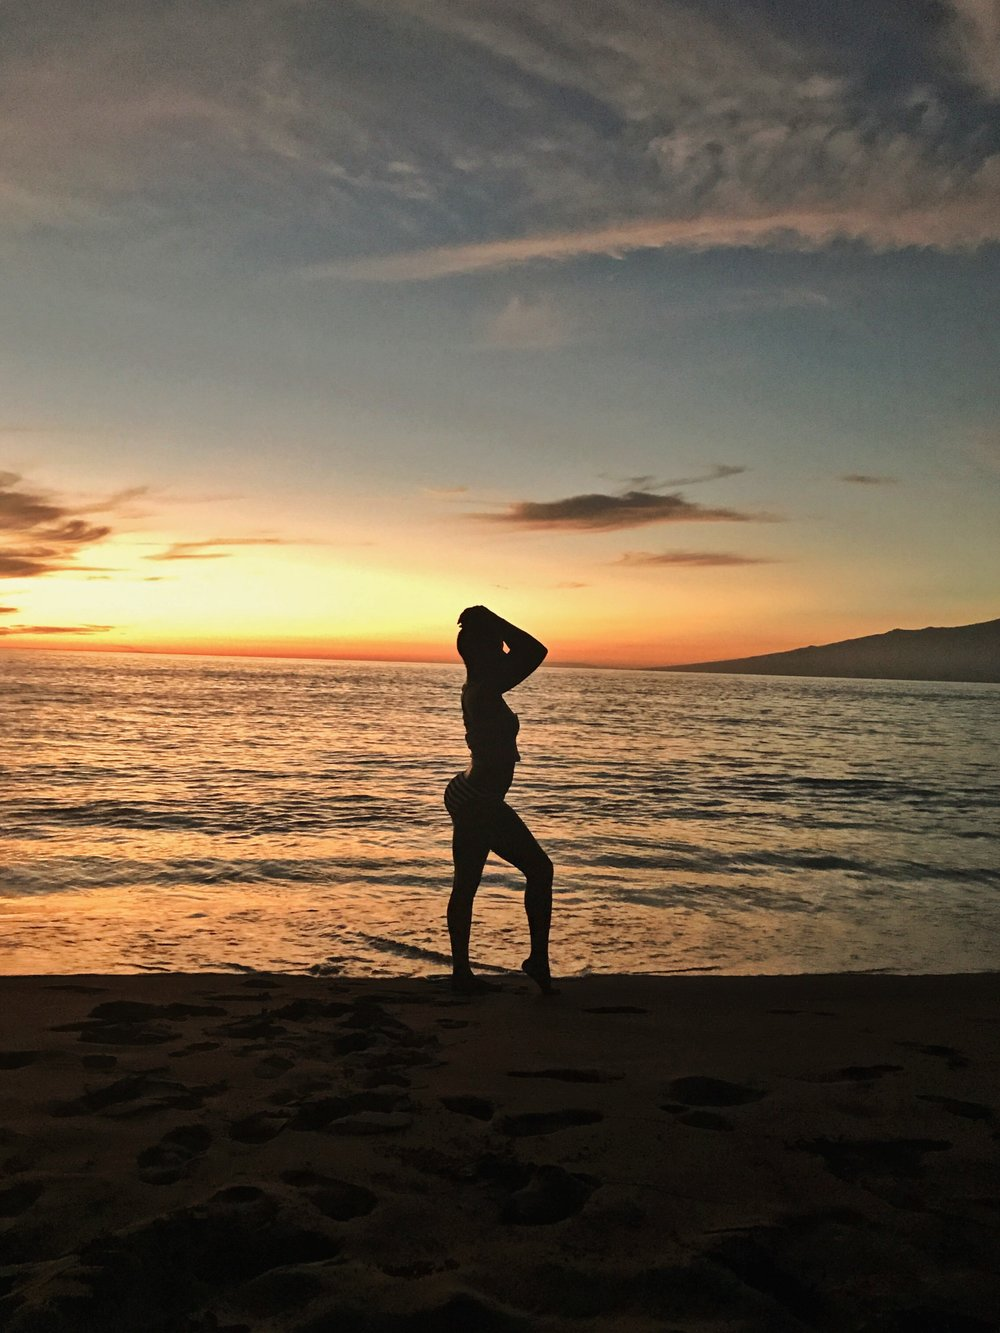 Hawaii-sunset-black-woman-silhouette-by-Atlanta-photographer-Chanel-French-17